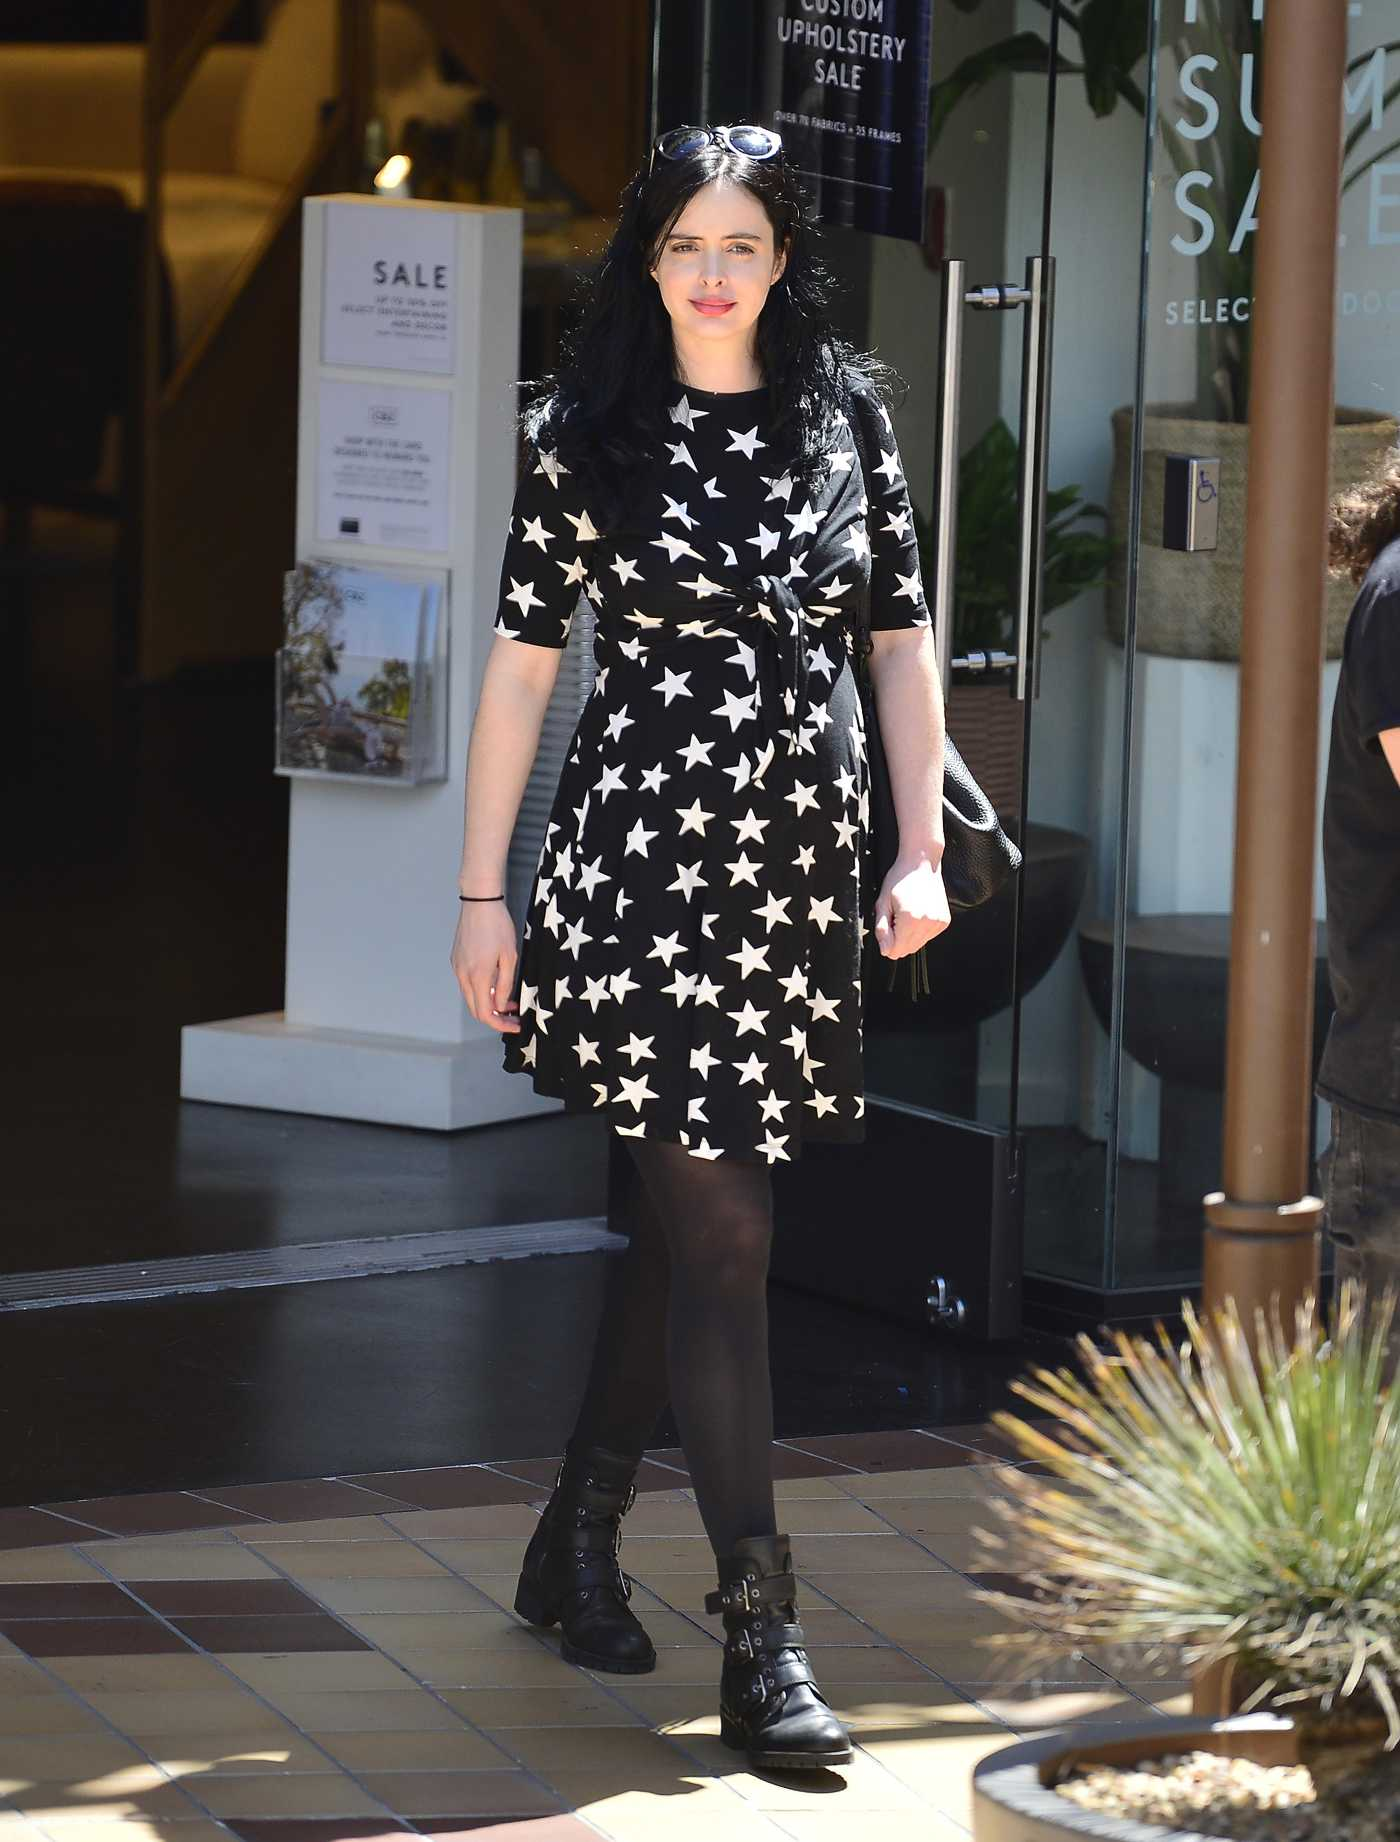 Krysten Ritter in a Black Dress Out Shopping in Los Angeles 04/23/2019